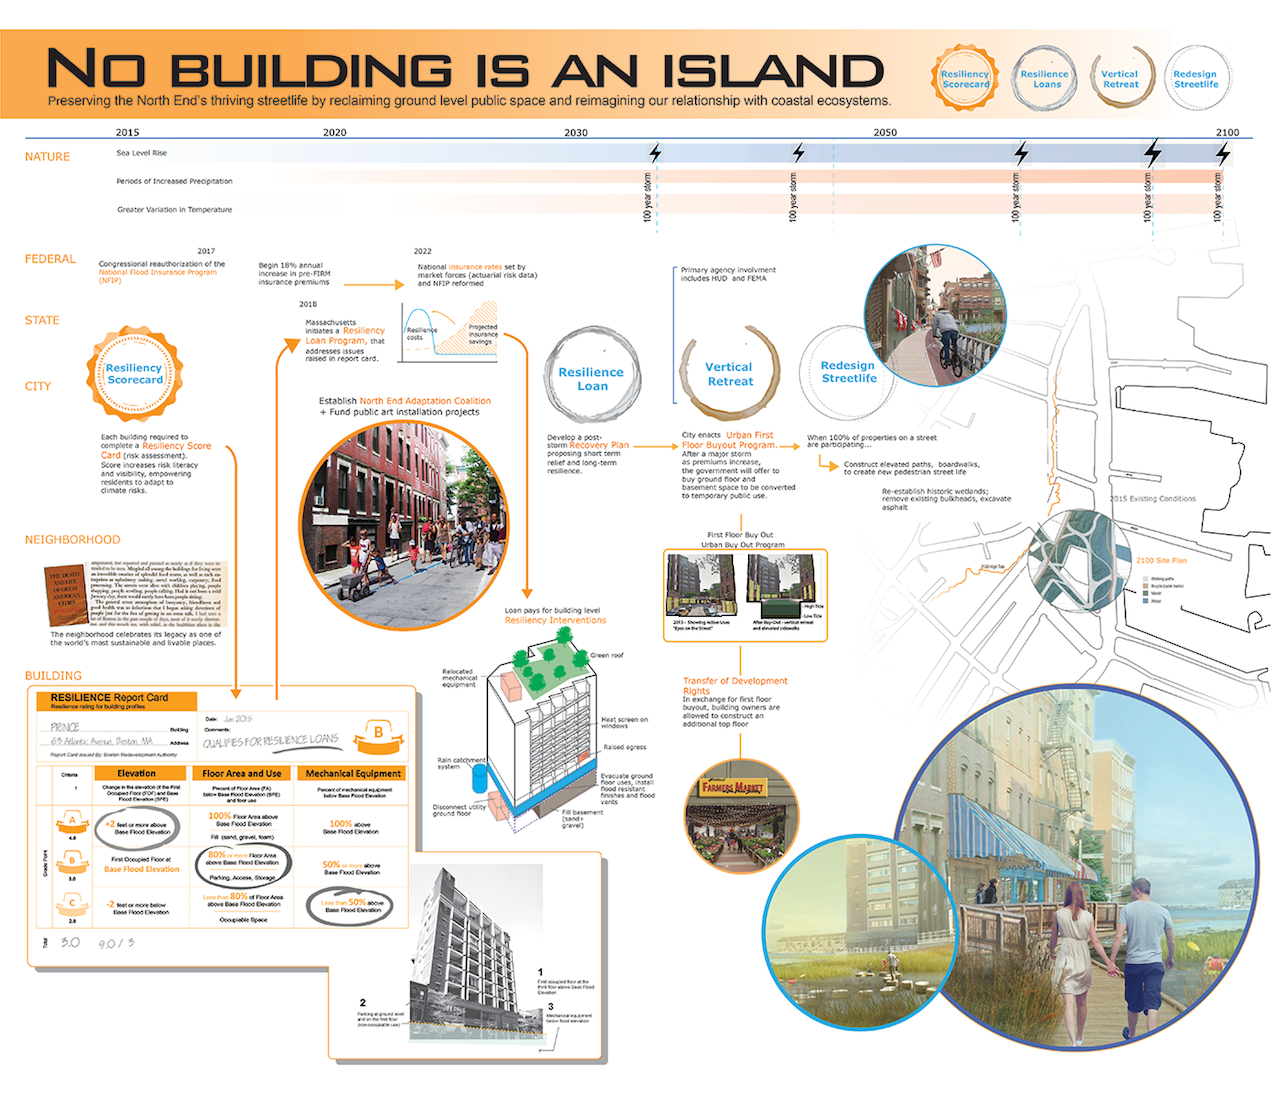 """""""No Building is an Island"""" led by Harvard Graduate School of Design – One of the most creative aspects of this proposal is the Resilience Report Card, a simple, user-friendly method that would indicates a building's vulnerability and allow the city to map risk and target investments."""